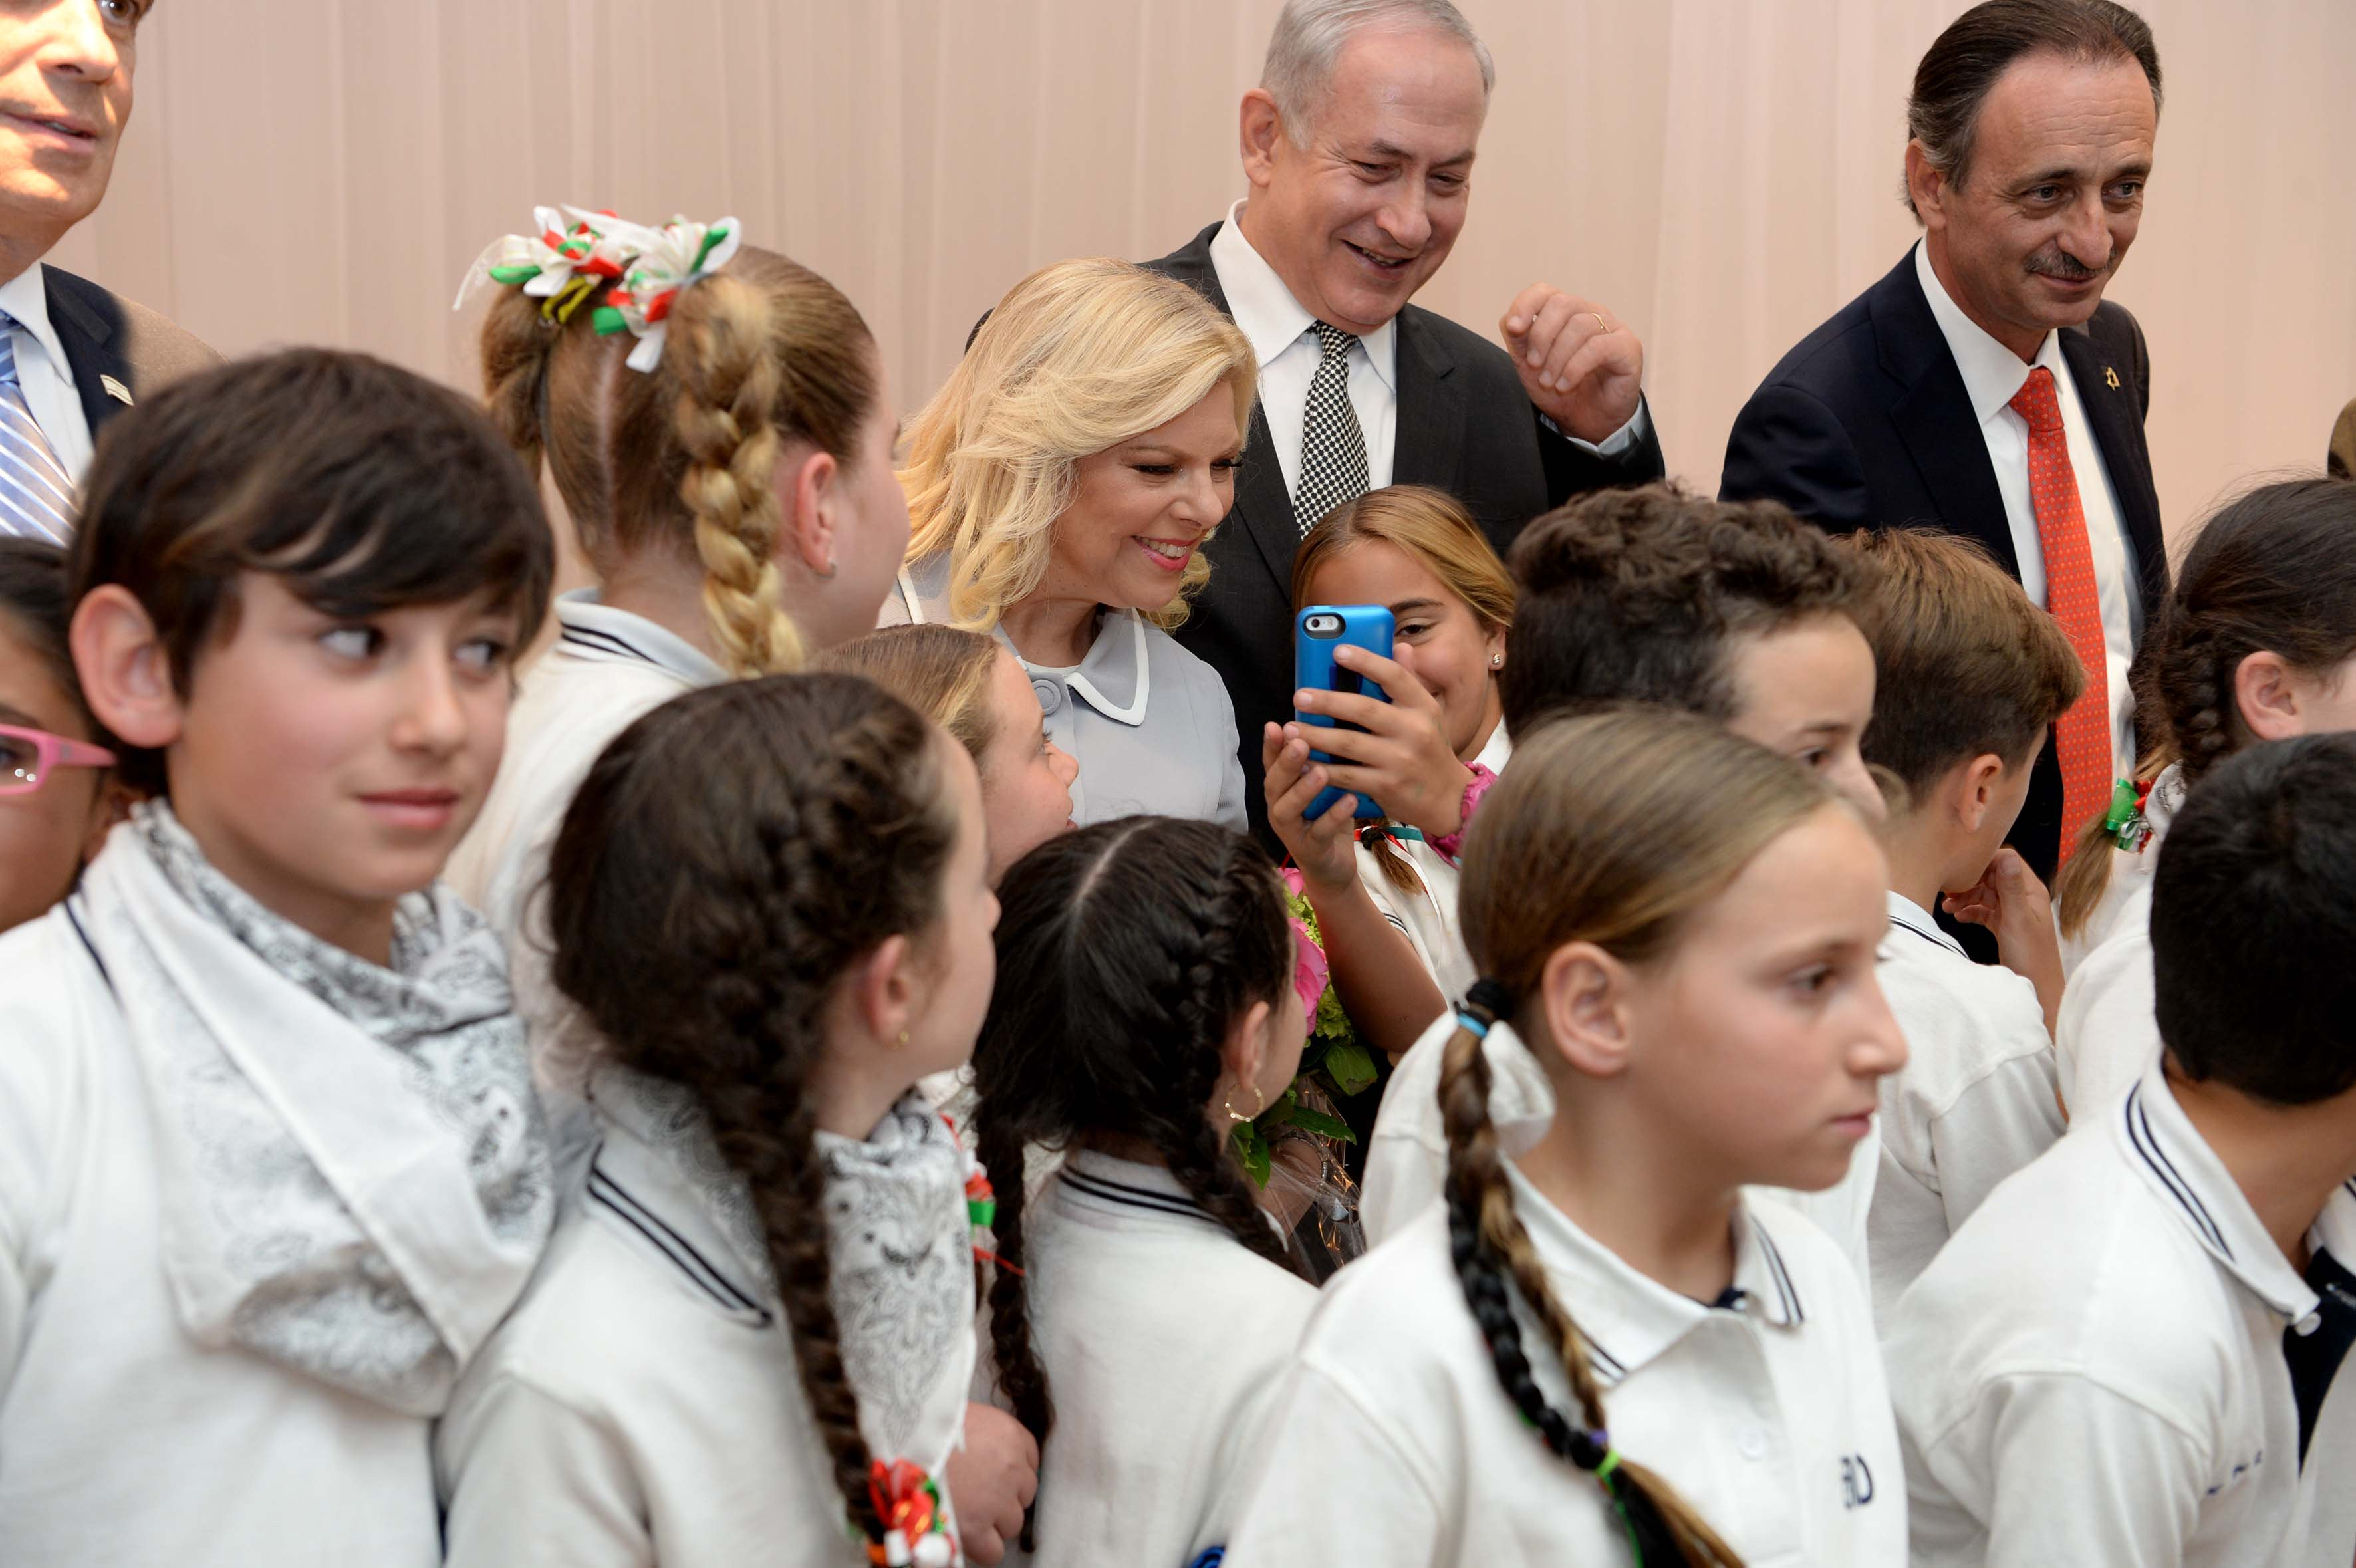 Prime Minister Benjamin Netanyahuand wfie Sara at an event for the Jewish community in Mexico City, September 14, 2017. AVI OHAYON - GPO